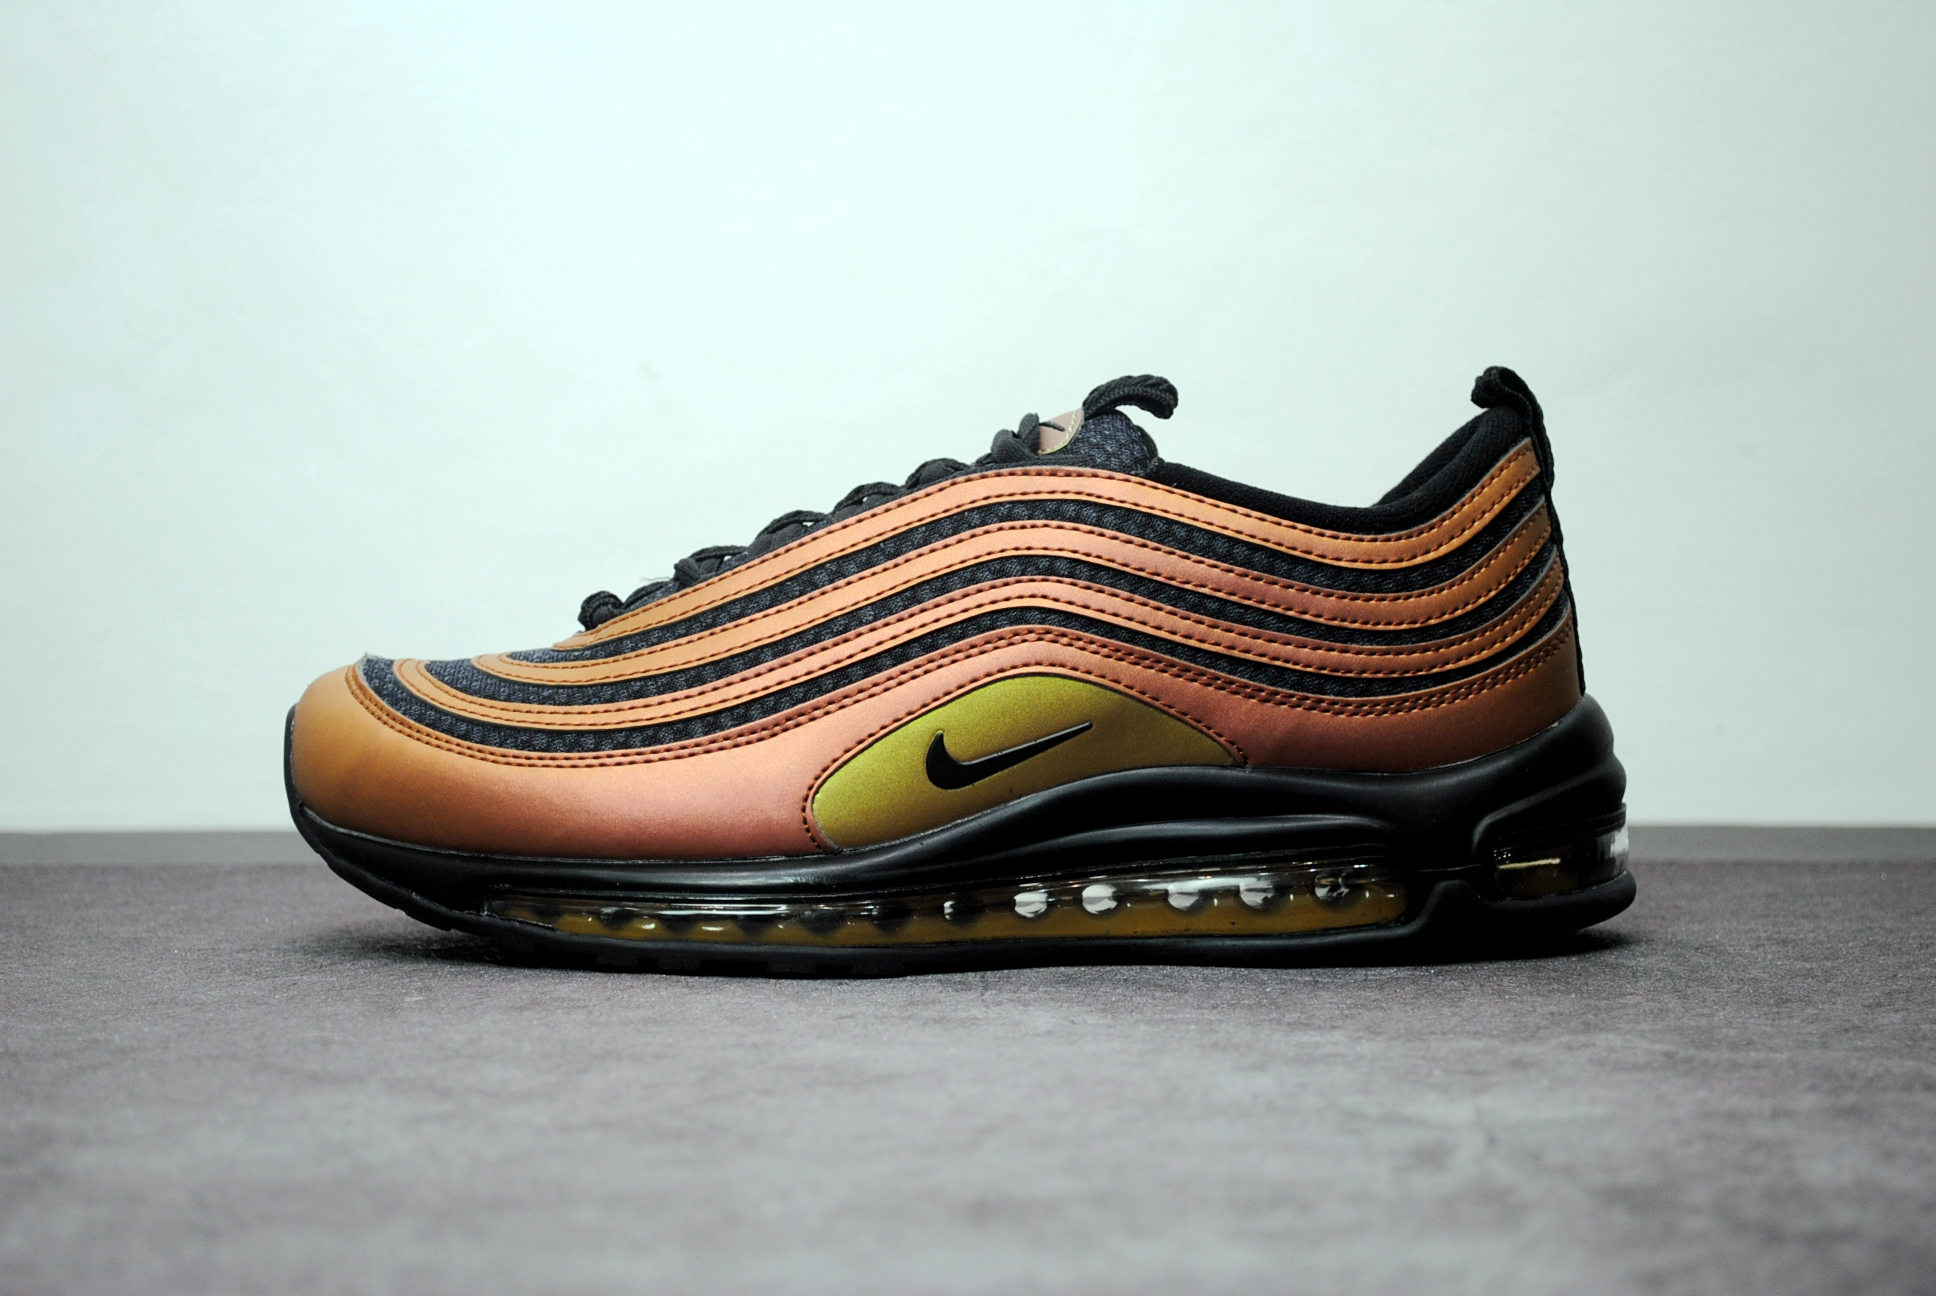 Skepta X Nike Air Max 97 Ultra 17 Multi Color ViVid Sulfur-Black Running Shoe For Sale